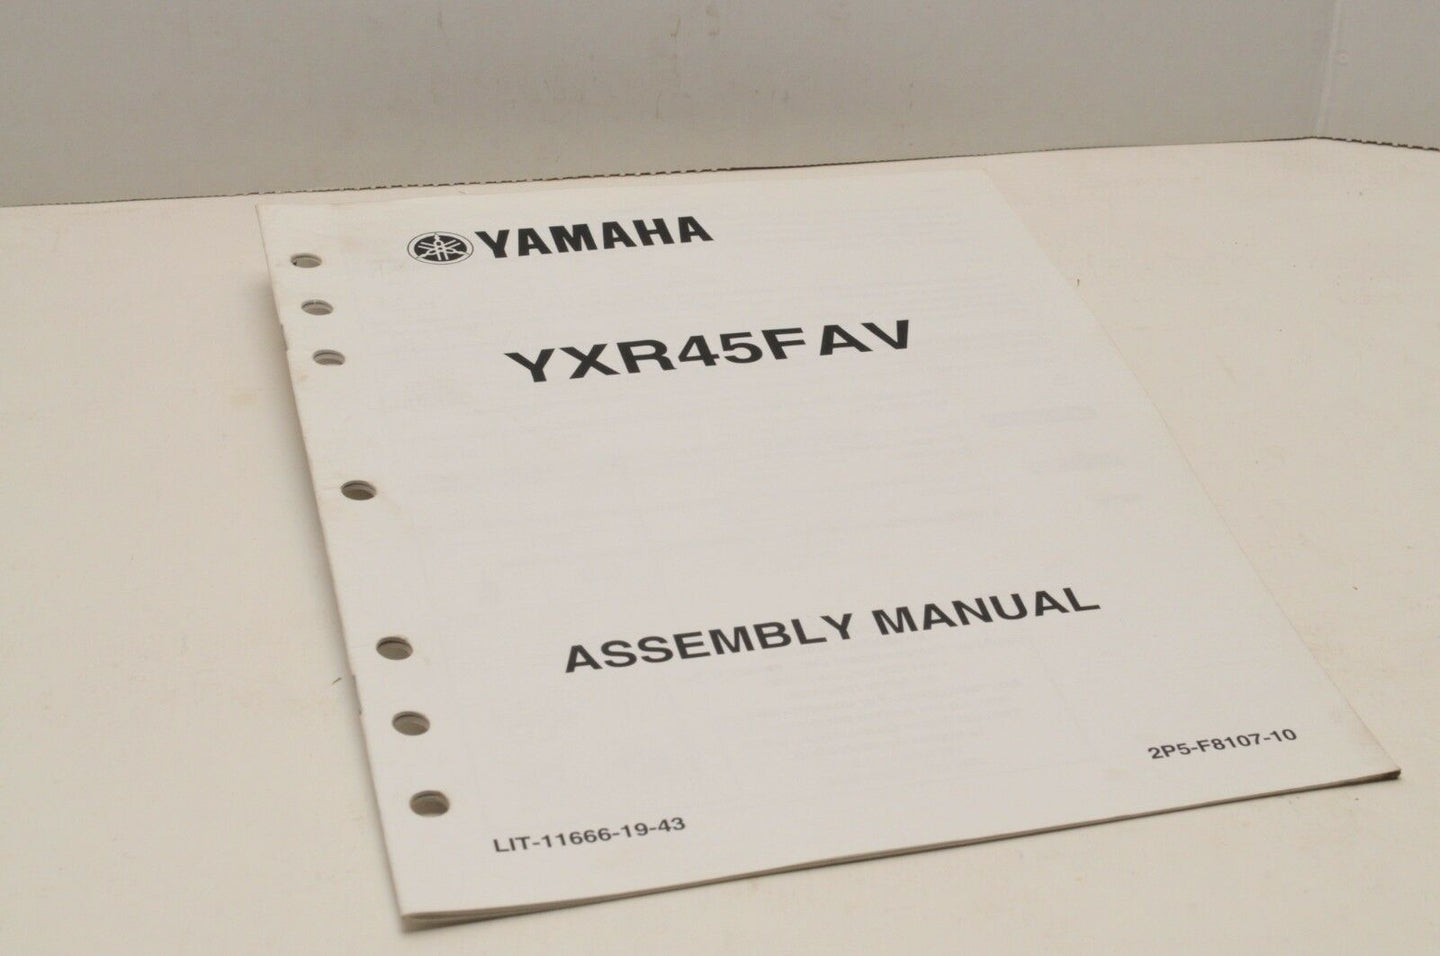 Genuine Yamaha ASSEMBLY SETUP MANUAL YXR45FAV RHINO 450 2006 LIT-11666-19-43